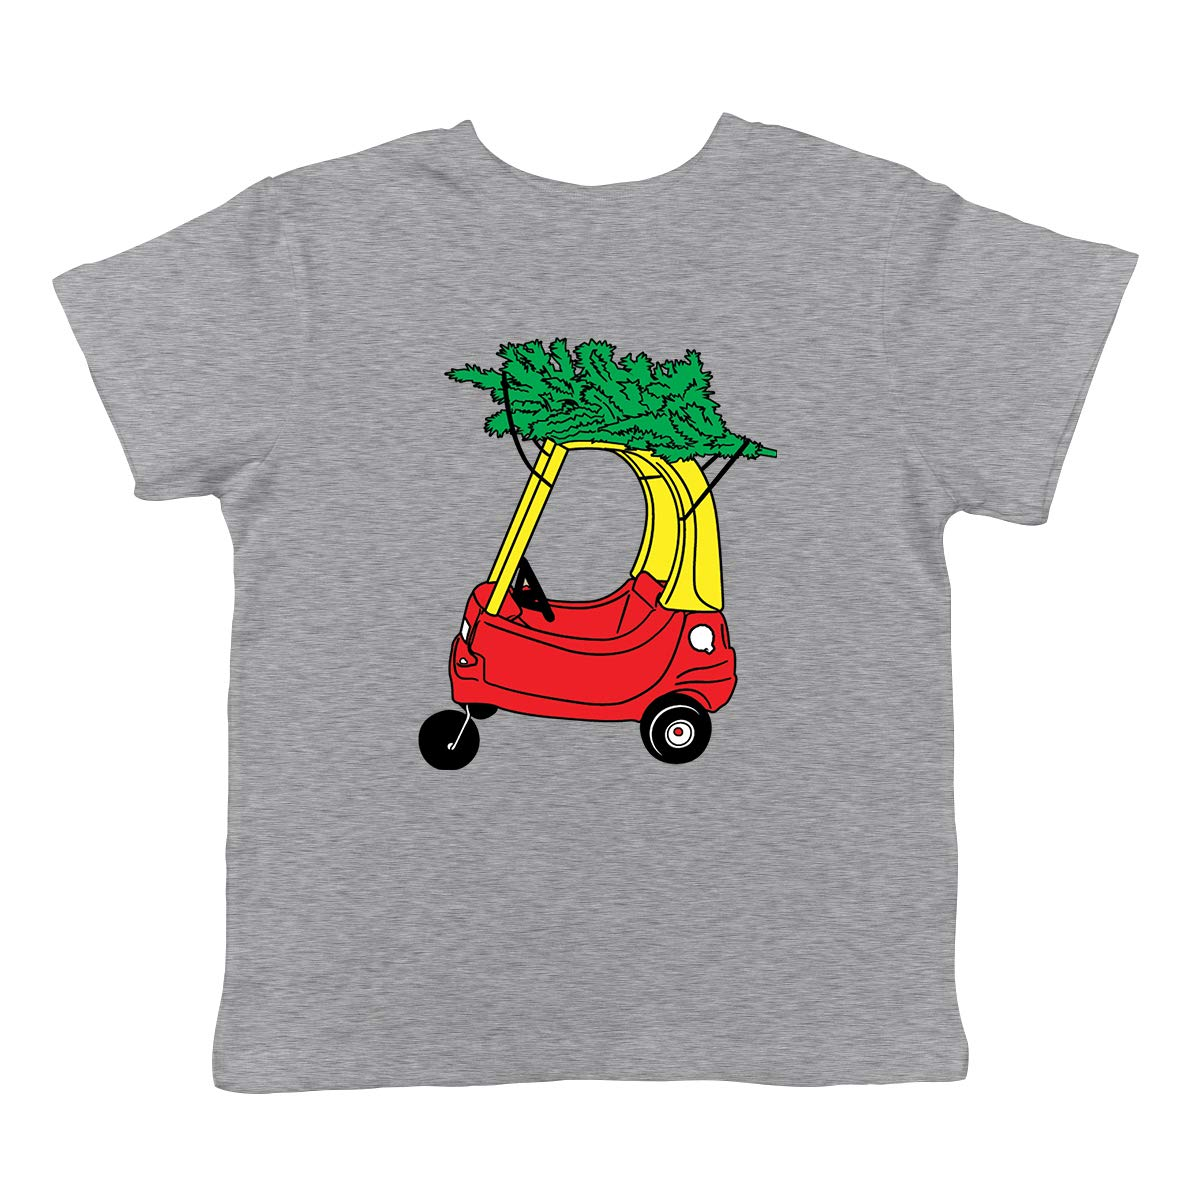 SpiritForged Apparel Childrens Car with Christmas Tree Infant T-Shirt